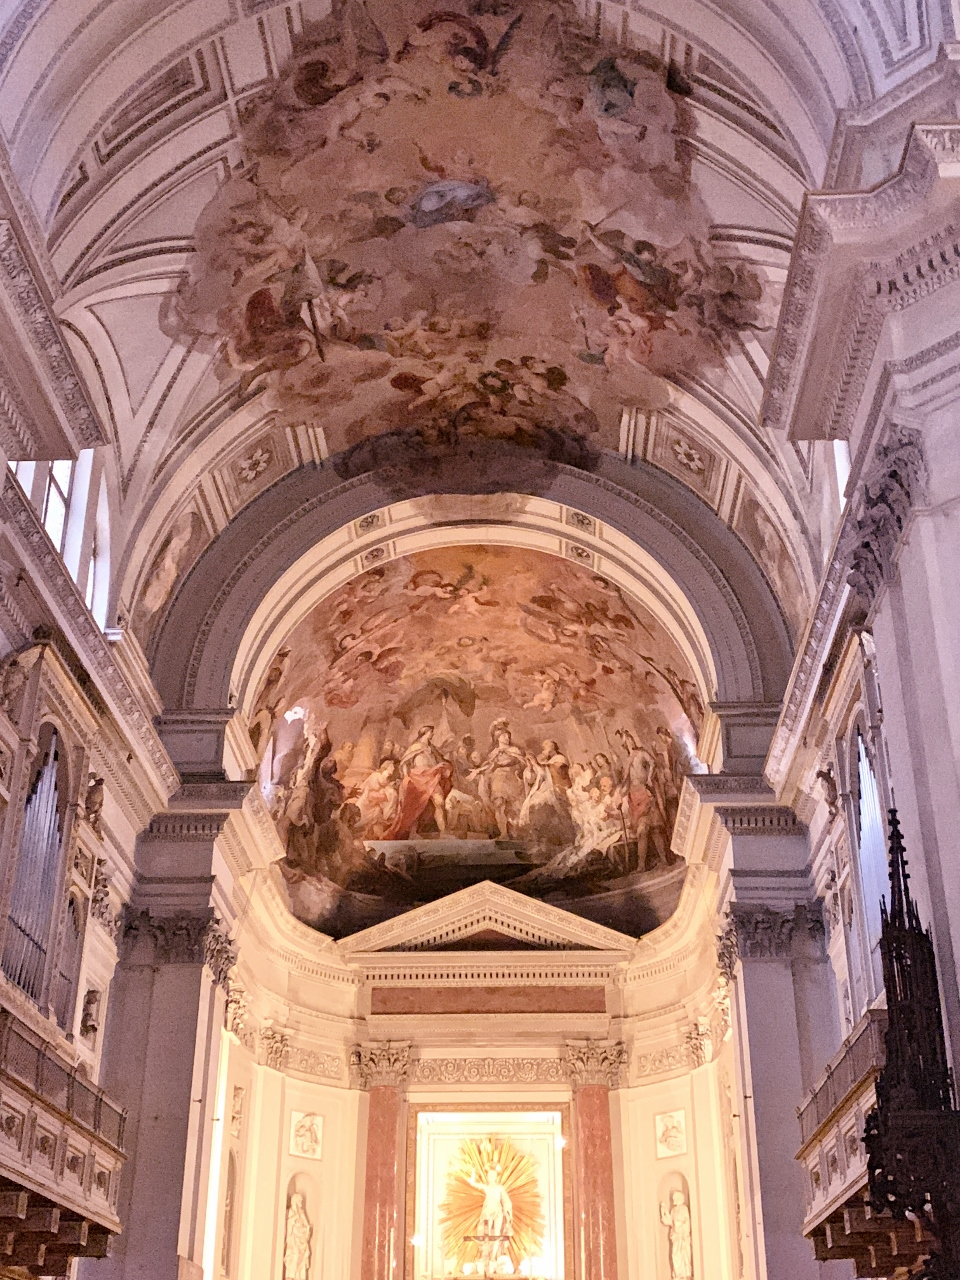 Travels to Sicily – Palermo & Monreale (Part 3 of 3) Image 15